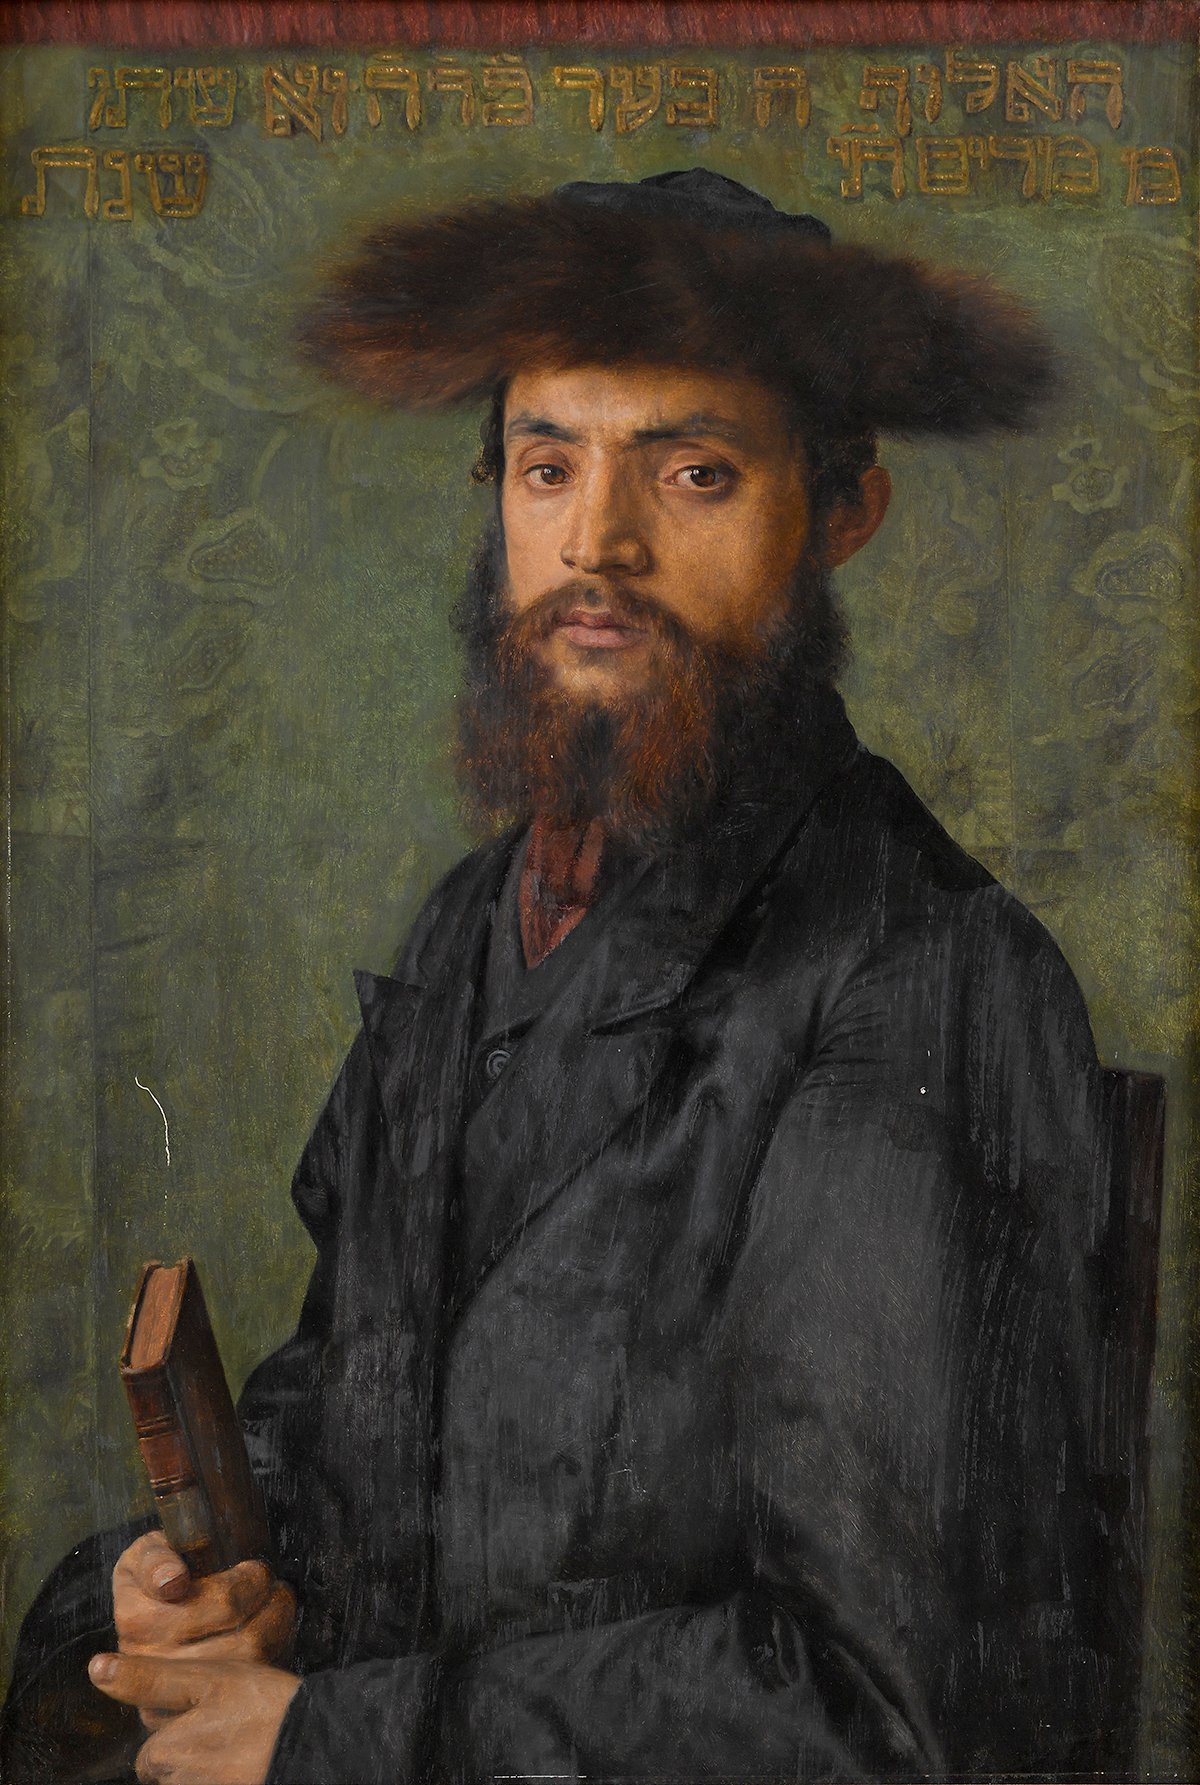 Isidor Kaufman (Austrian/Hungarian 1853-1921), The Zealot (Young Rabbi), Oil on panel, Sold at Freeman's for $185,000